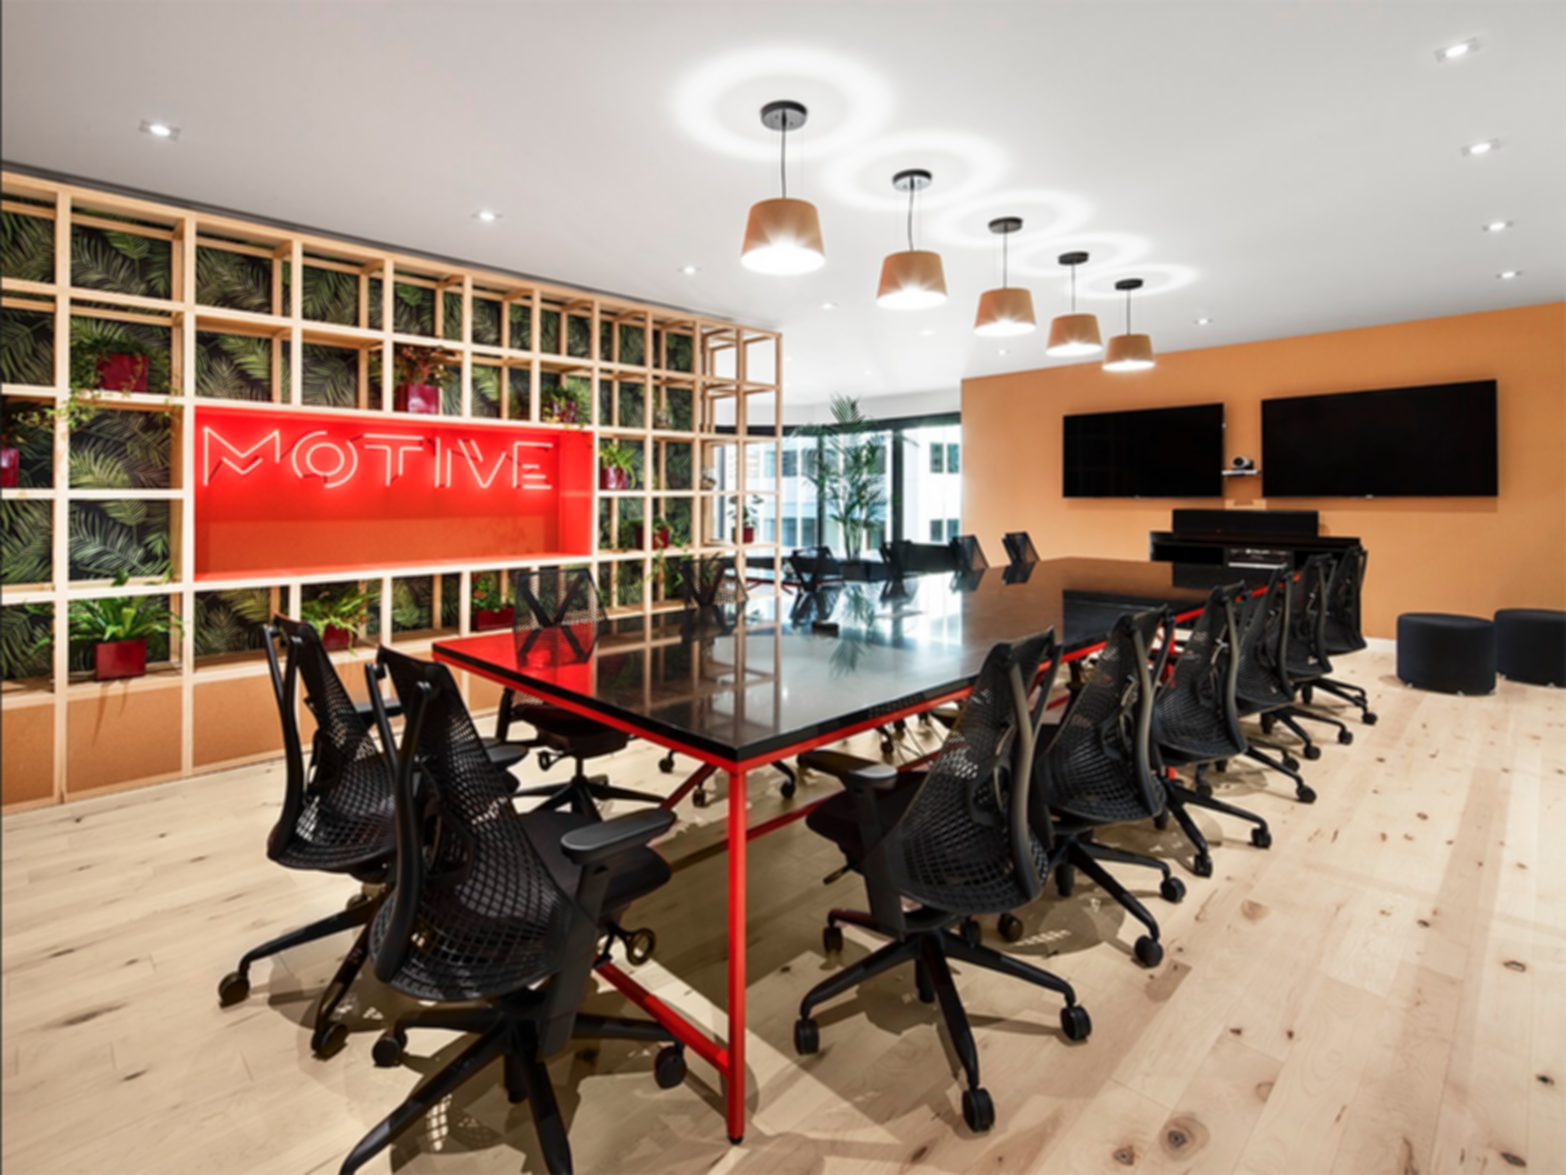 Electronic Arts Offices - Meeting Room